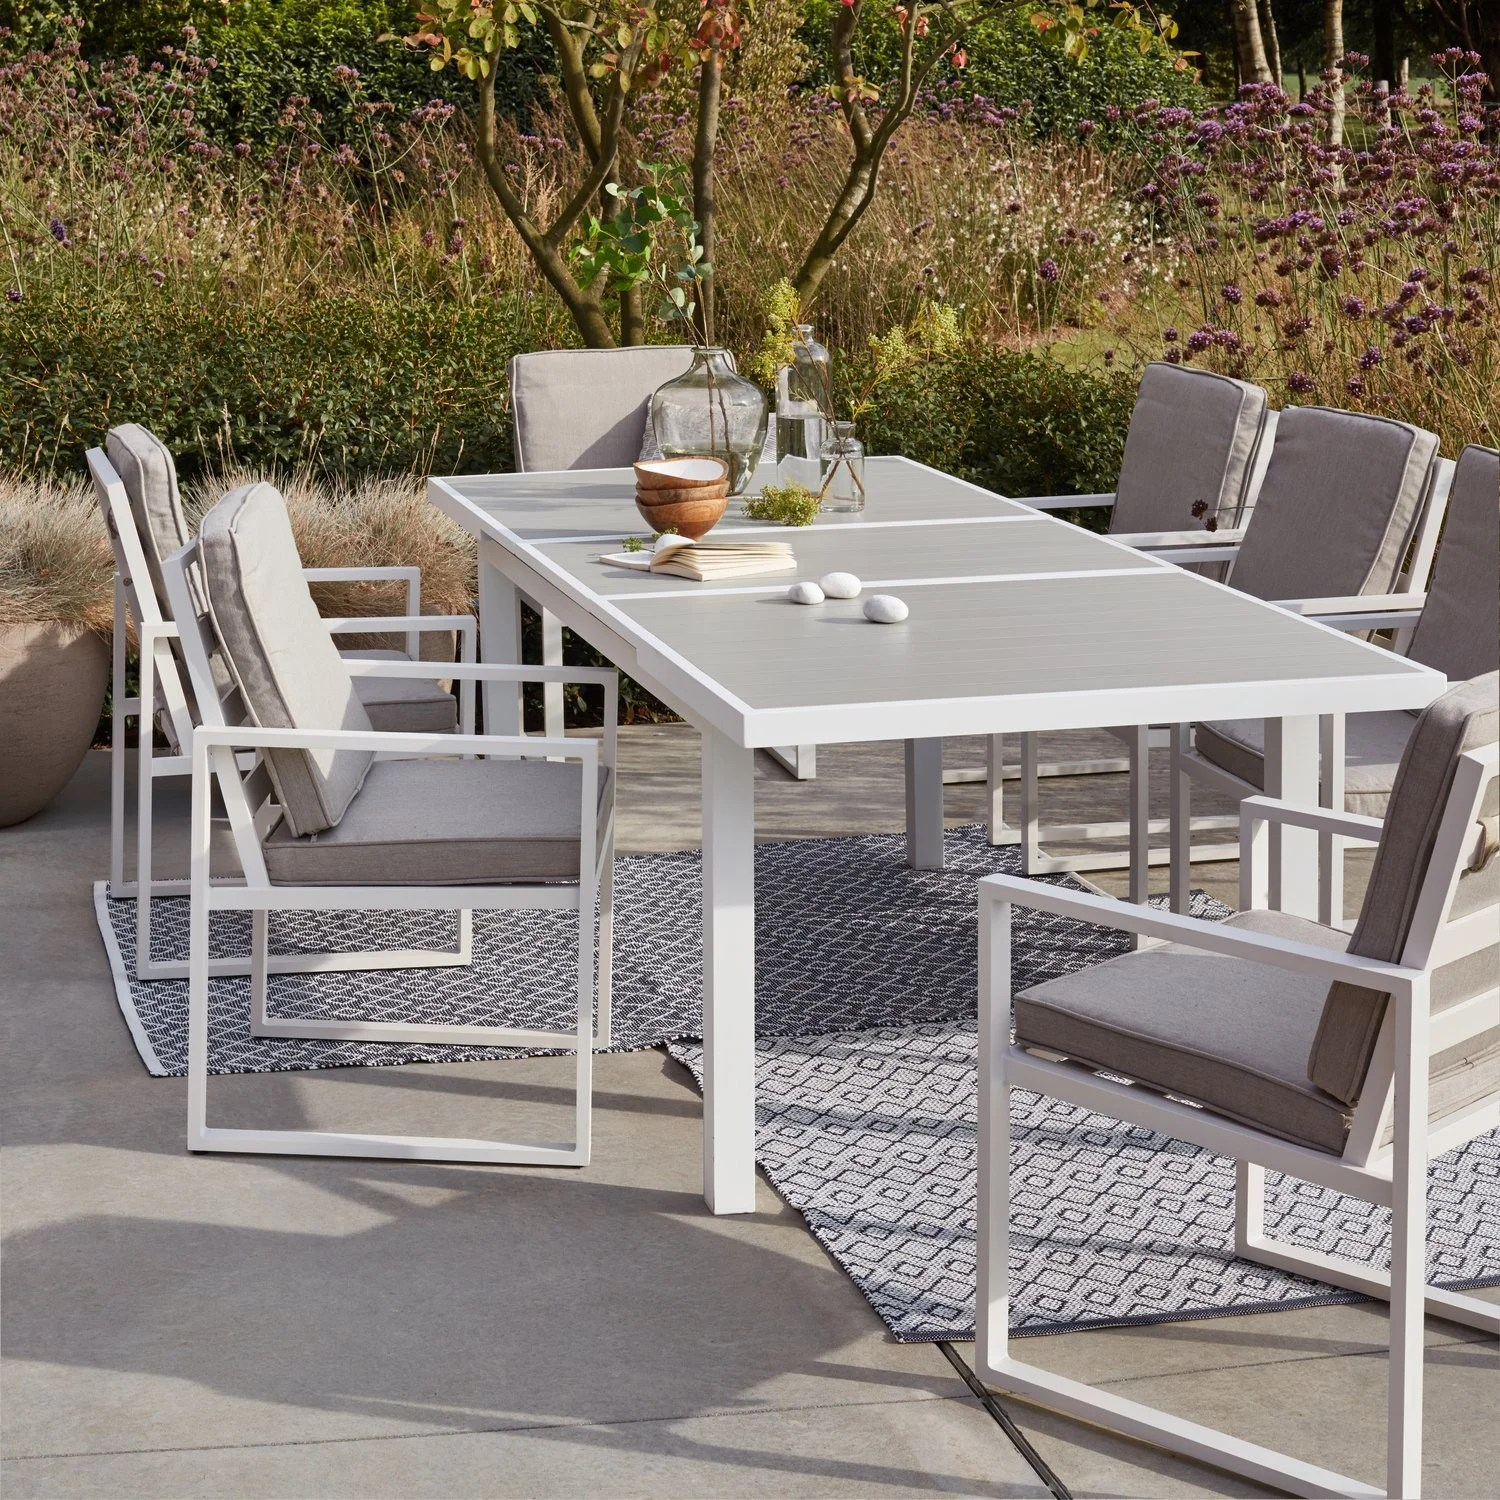 Salon De Jardin Romantique Blanc La Nouvelle Collection De Salon De Jardin 2019 Leroy Merlin